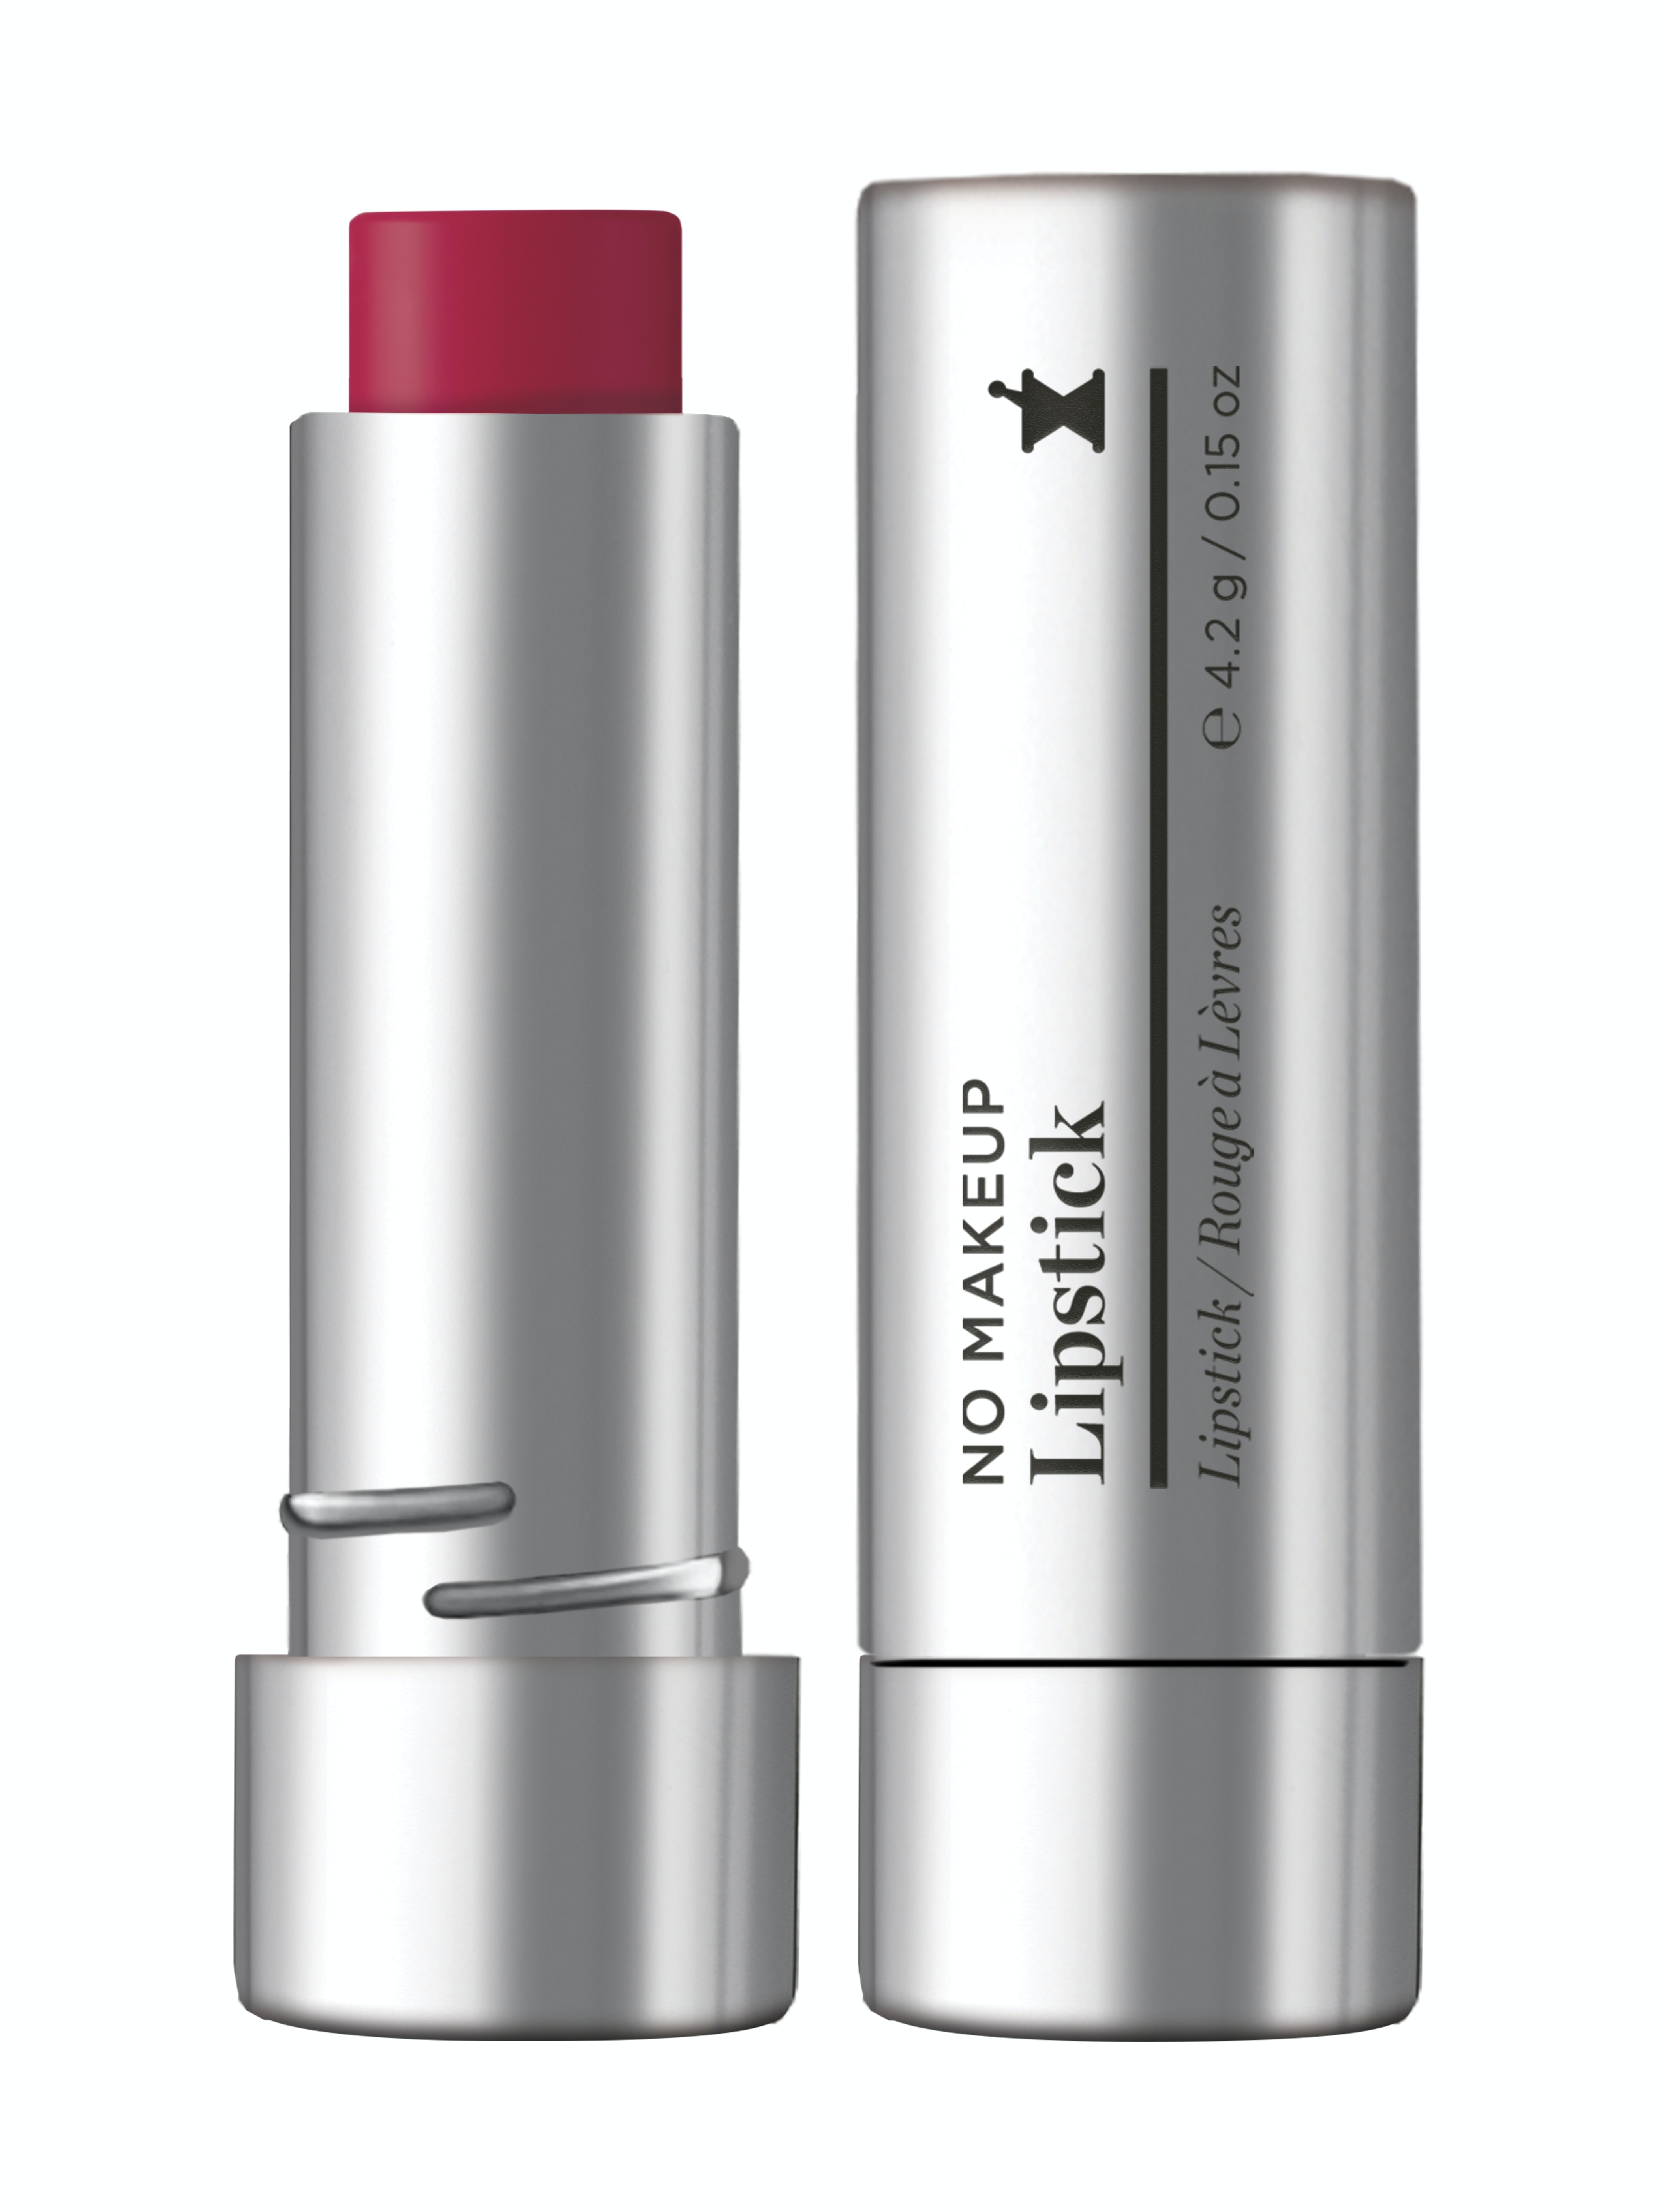 Perricone MD No Makeup Lipstick in Berry